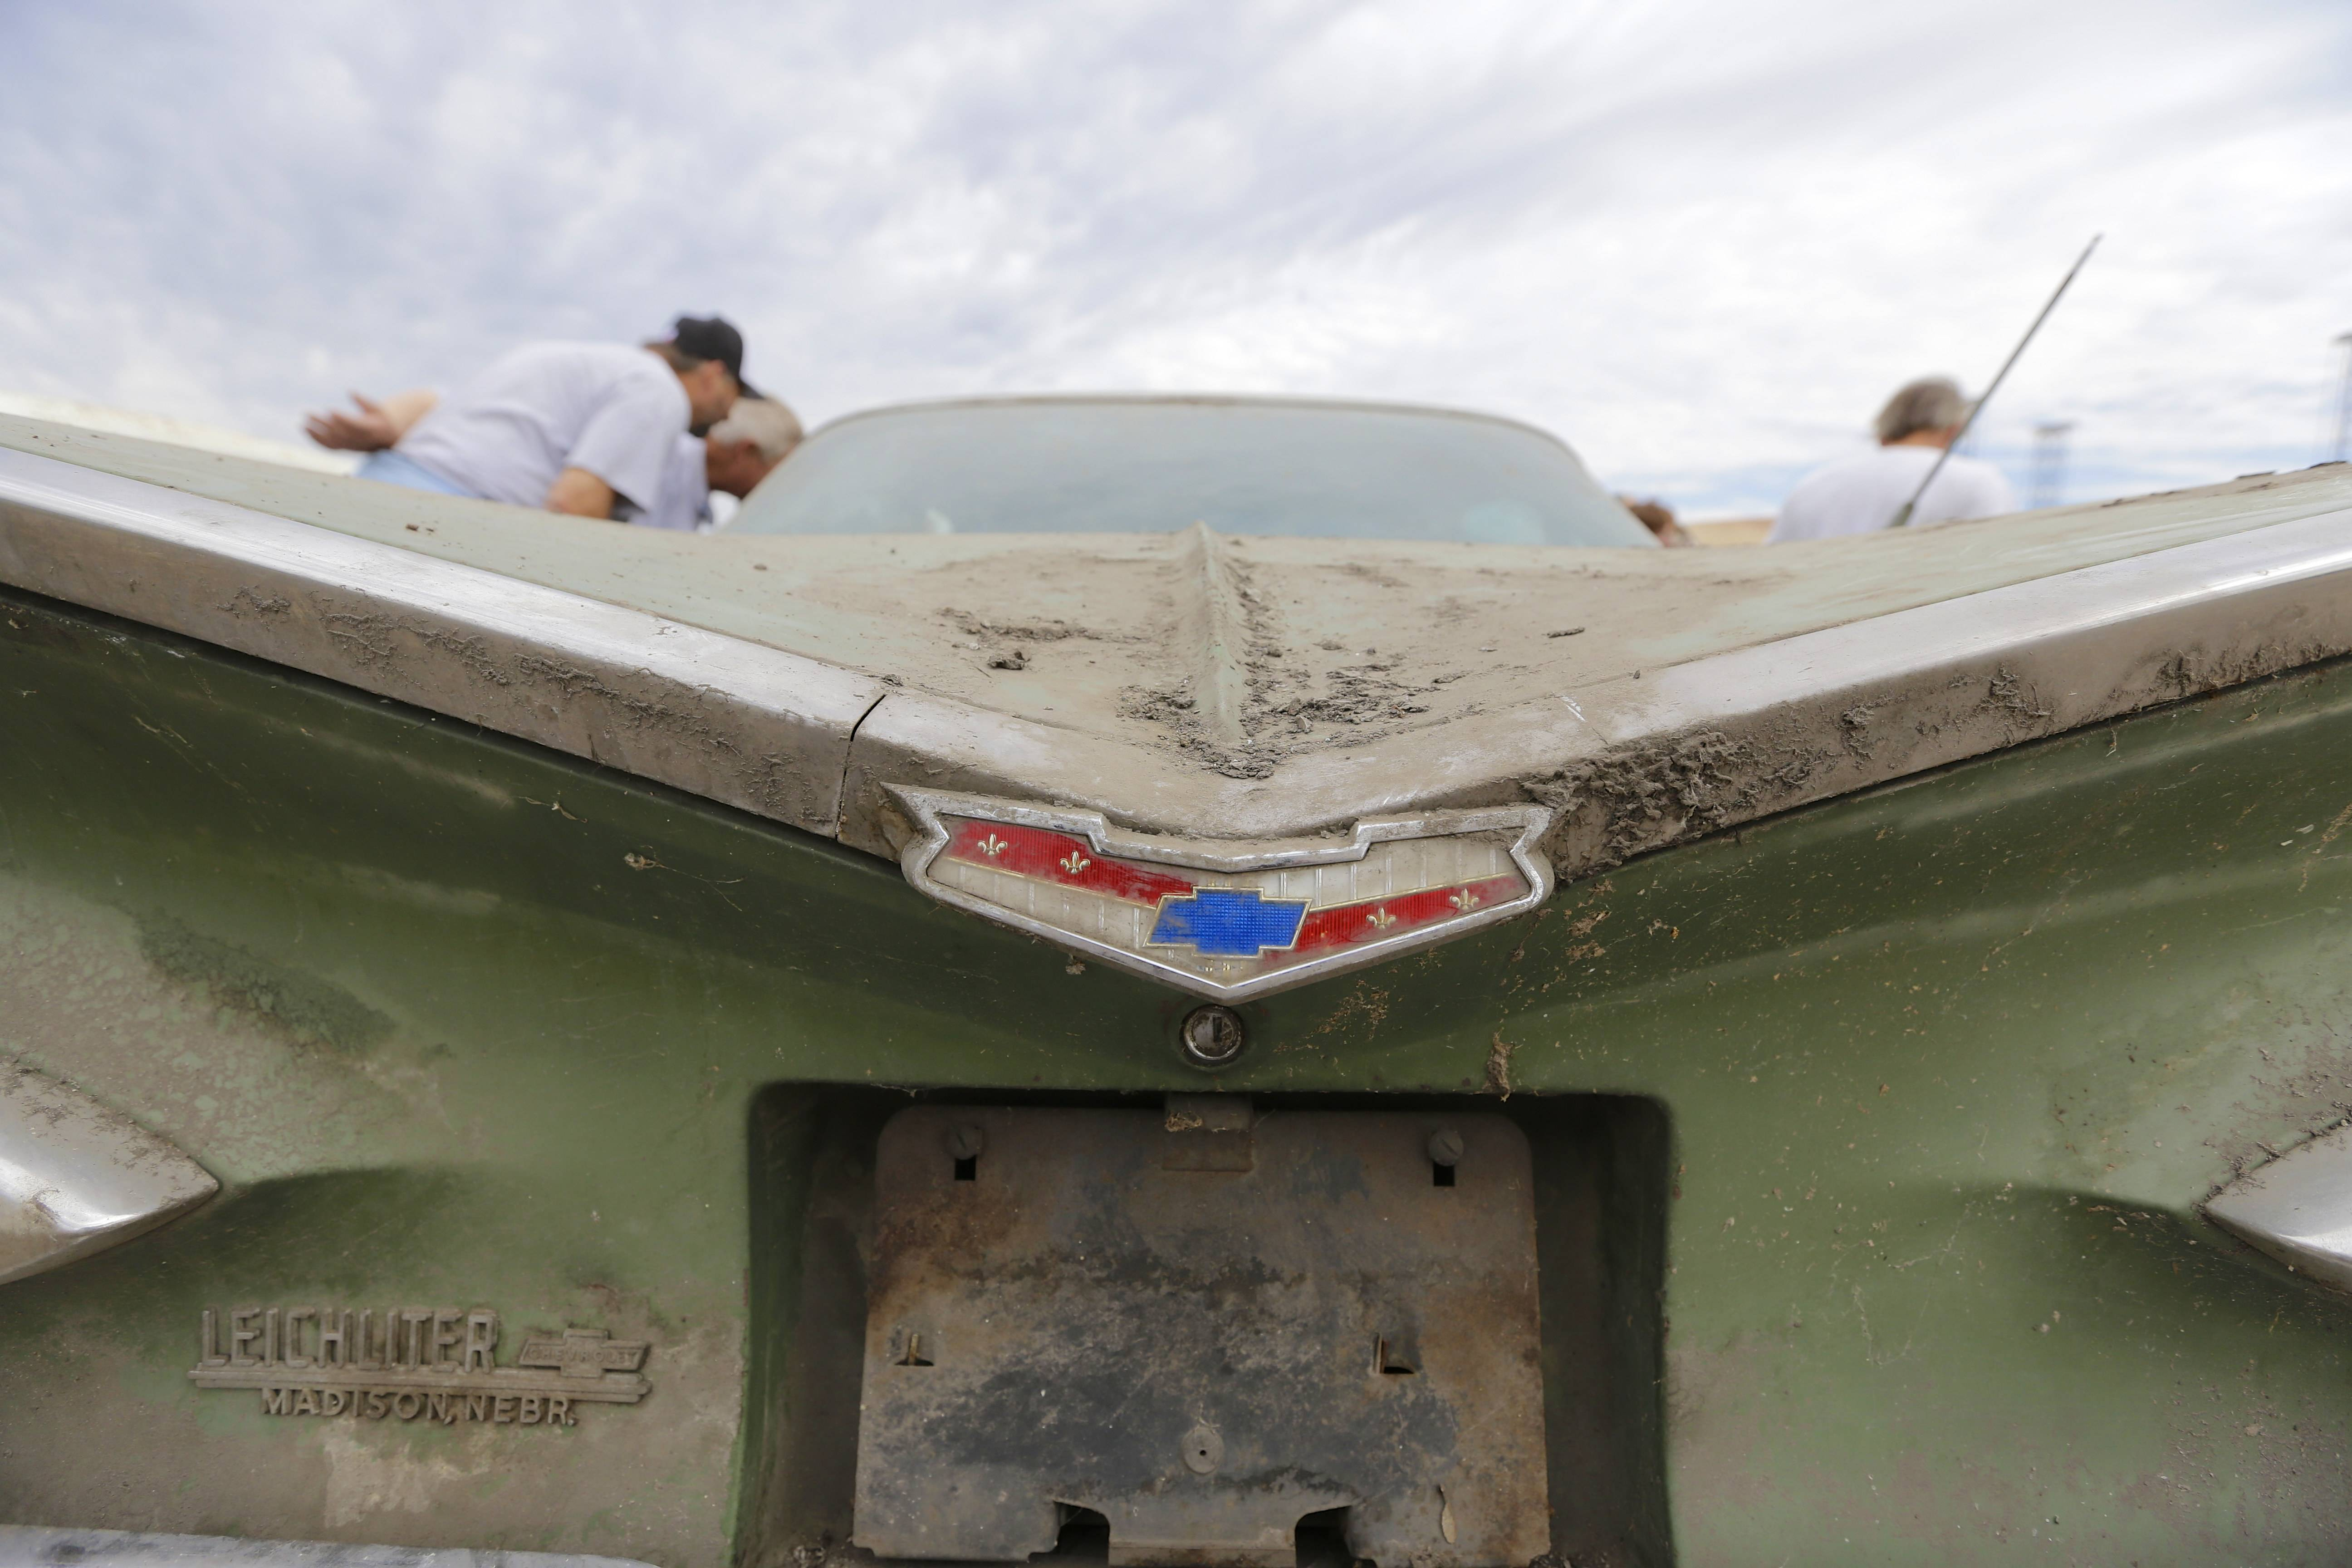 A Chevy Impala is looked at during a preview for an auction of vintage cars and trucks from the former Lambrecht Chevrolet dealership in Pierce, Nebraska.